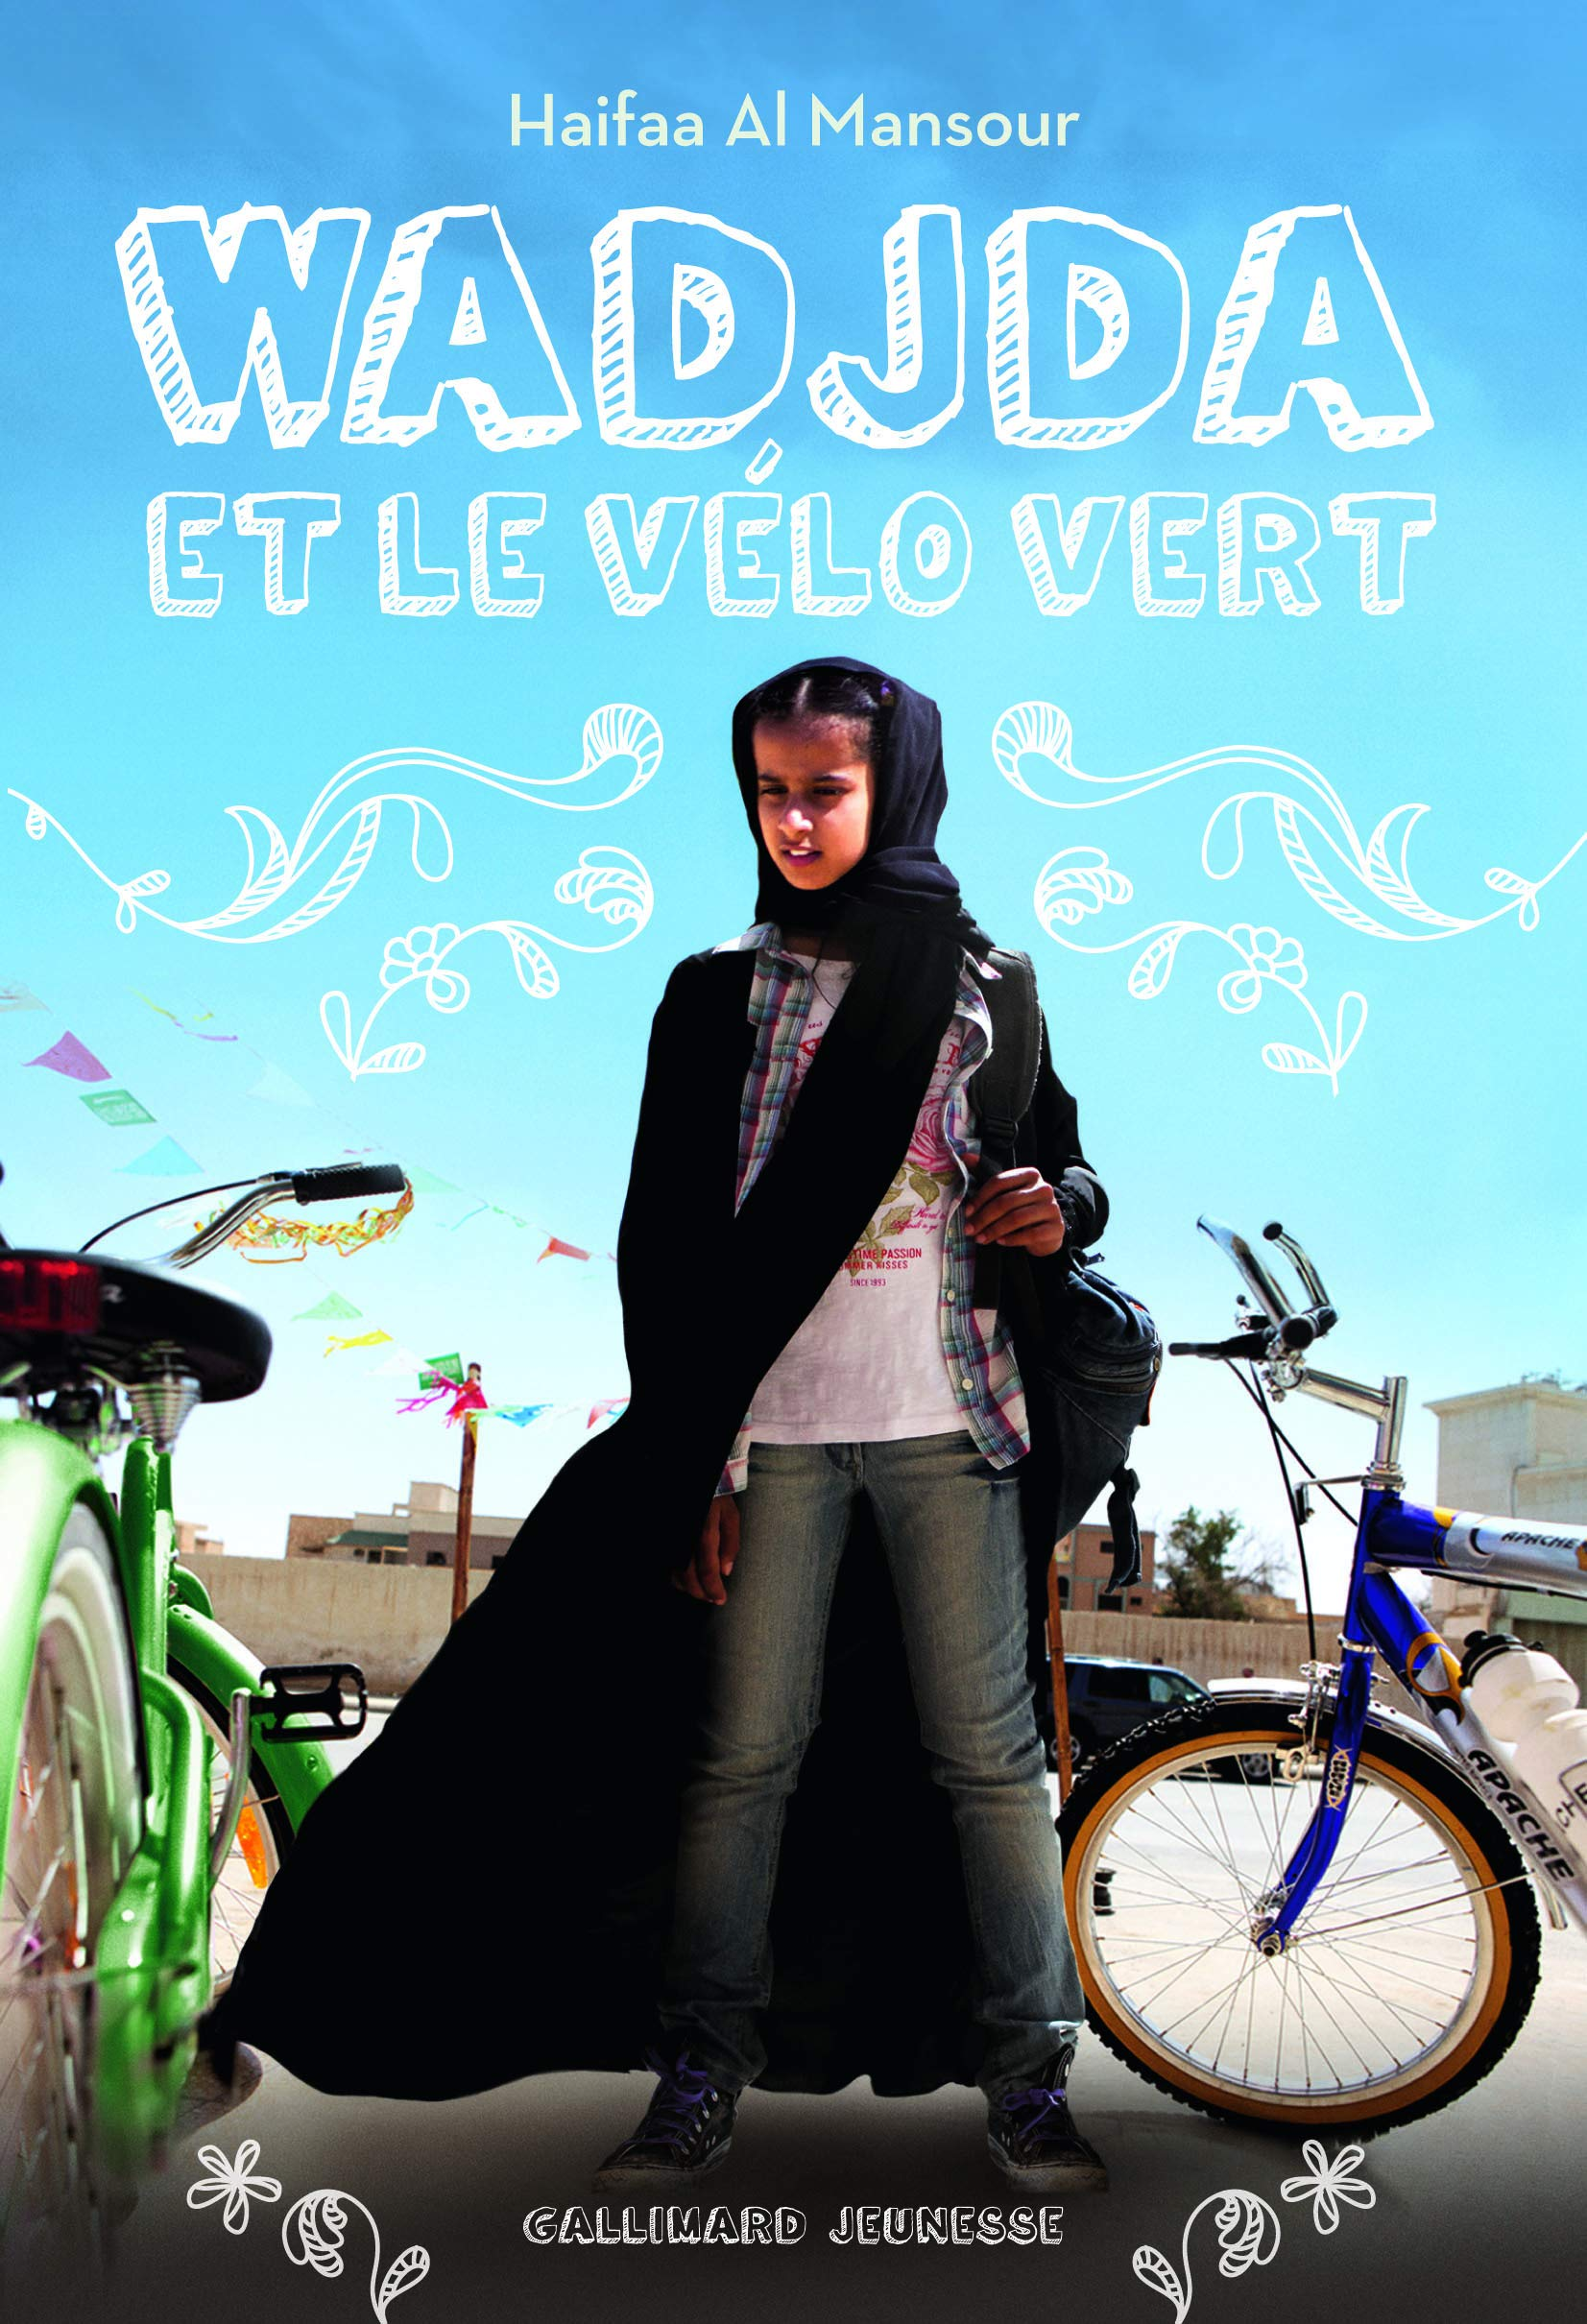 Wadjda et le vélo vert: The Best Top 10 Arabic Movies on Netflix